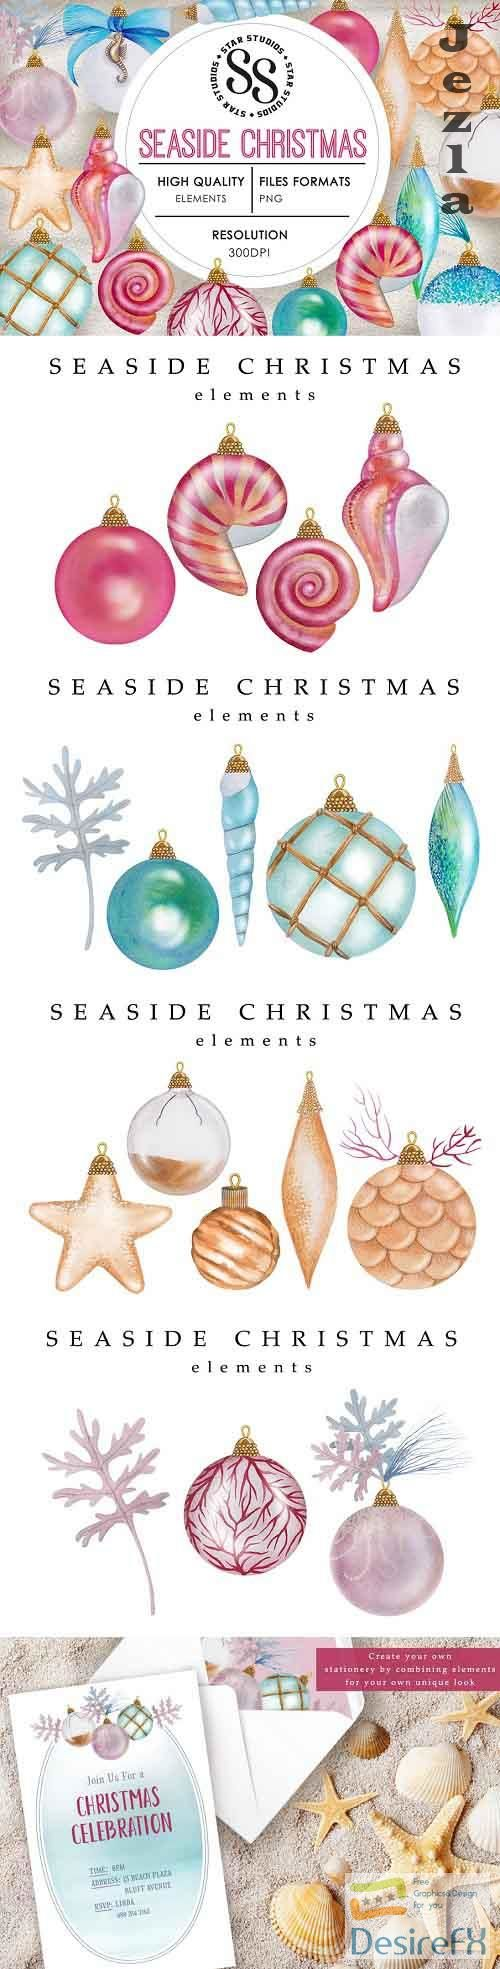 Seaside Christmas - 4763055